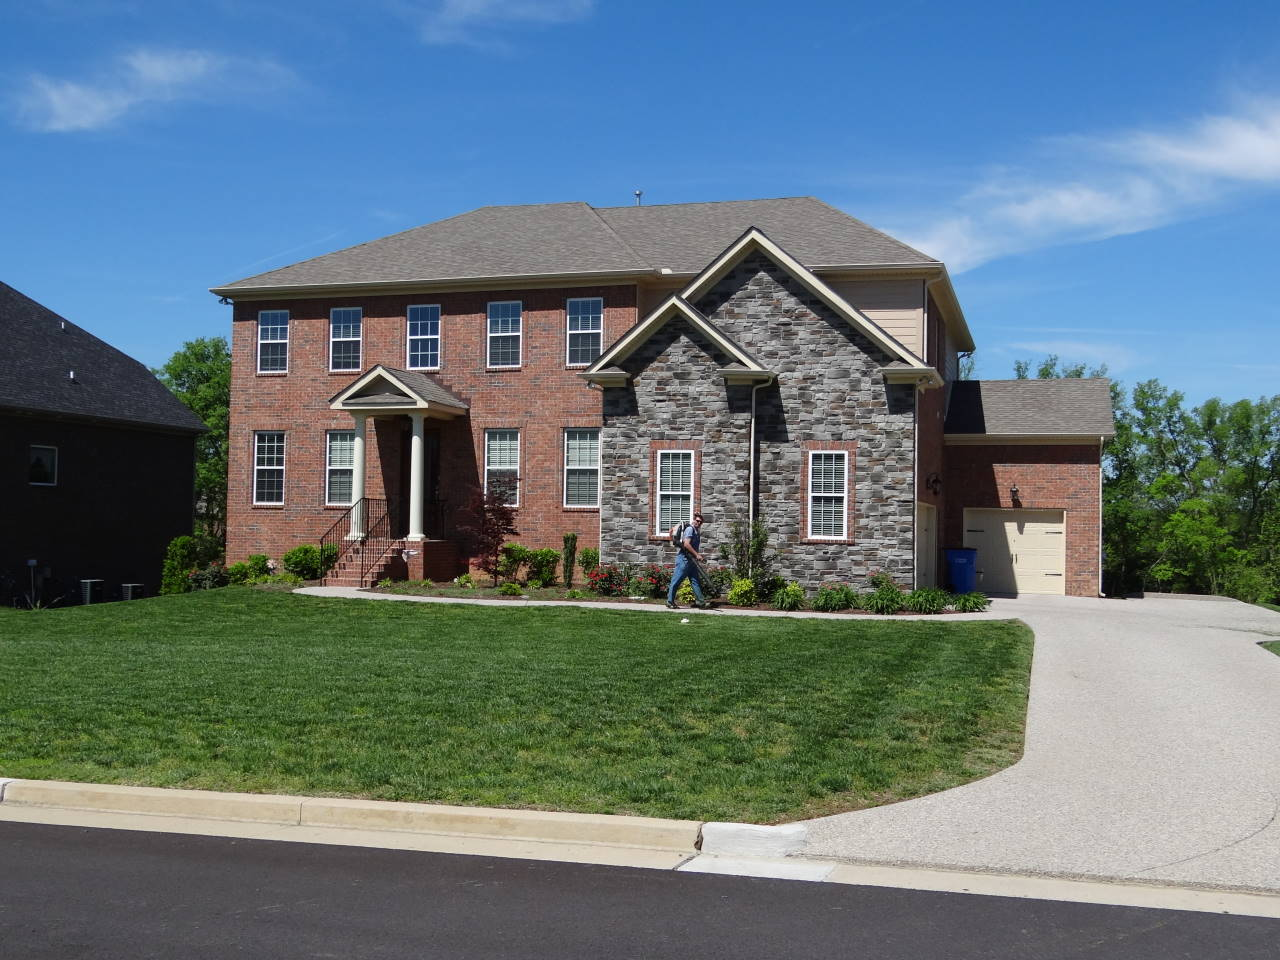 Lawn service brentwood tn franklin brentwood lawn care for The brentwood